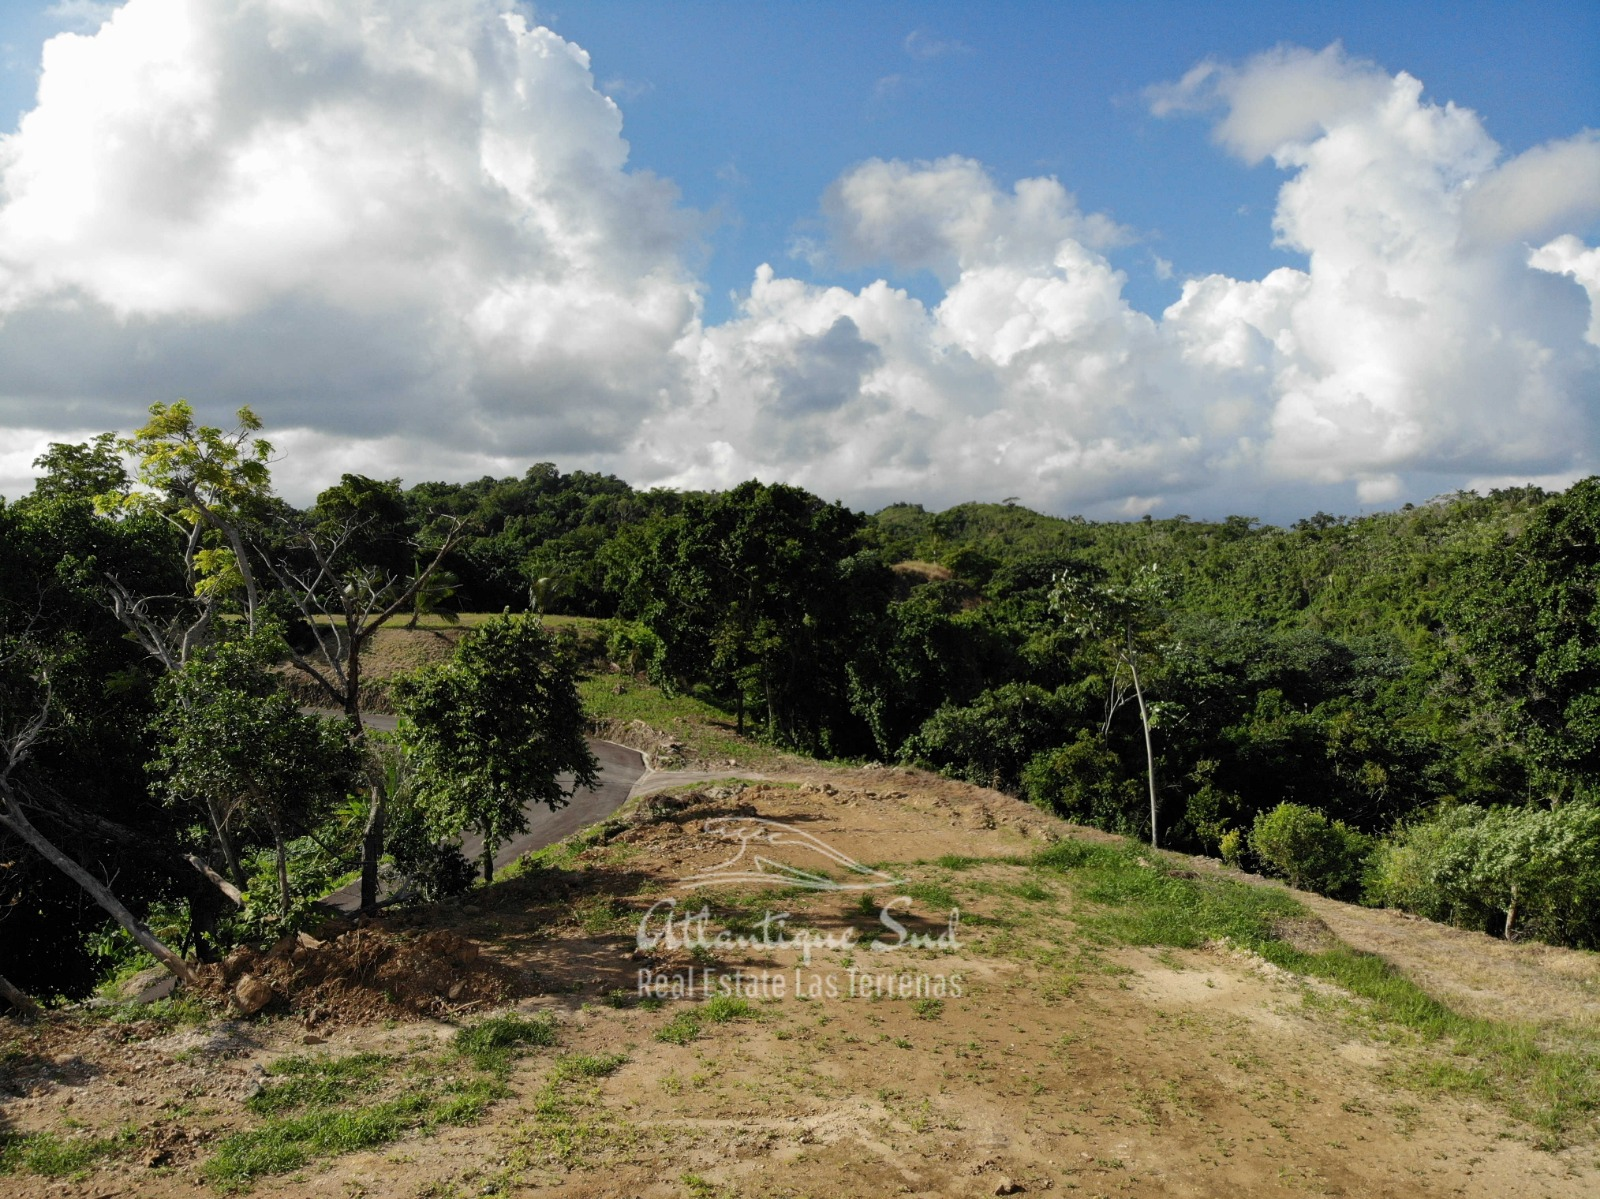 Land Lots for sale las terrenas samana25.jpeg